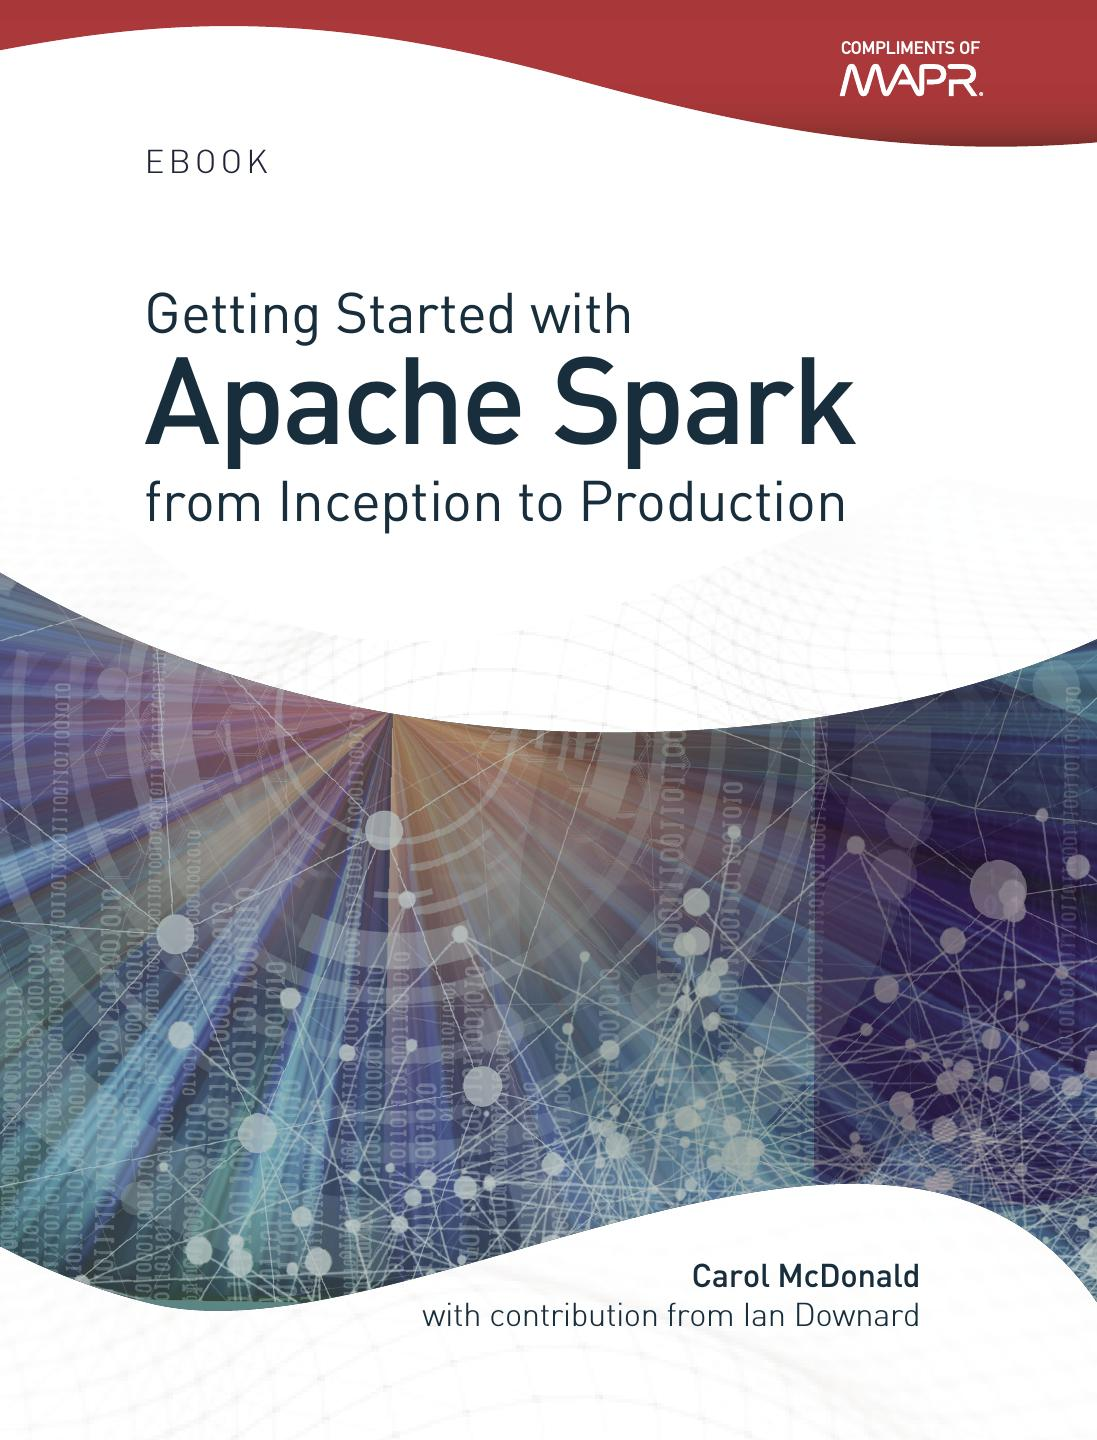 Getting Started with Apache Spark from Inception to Production